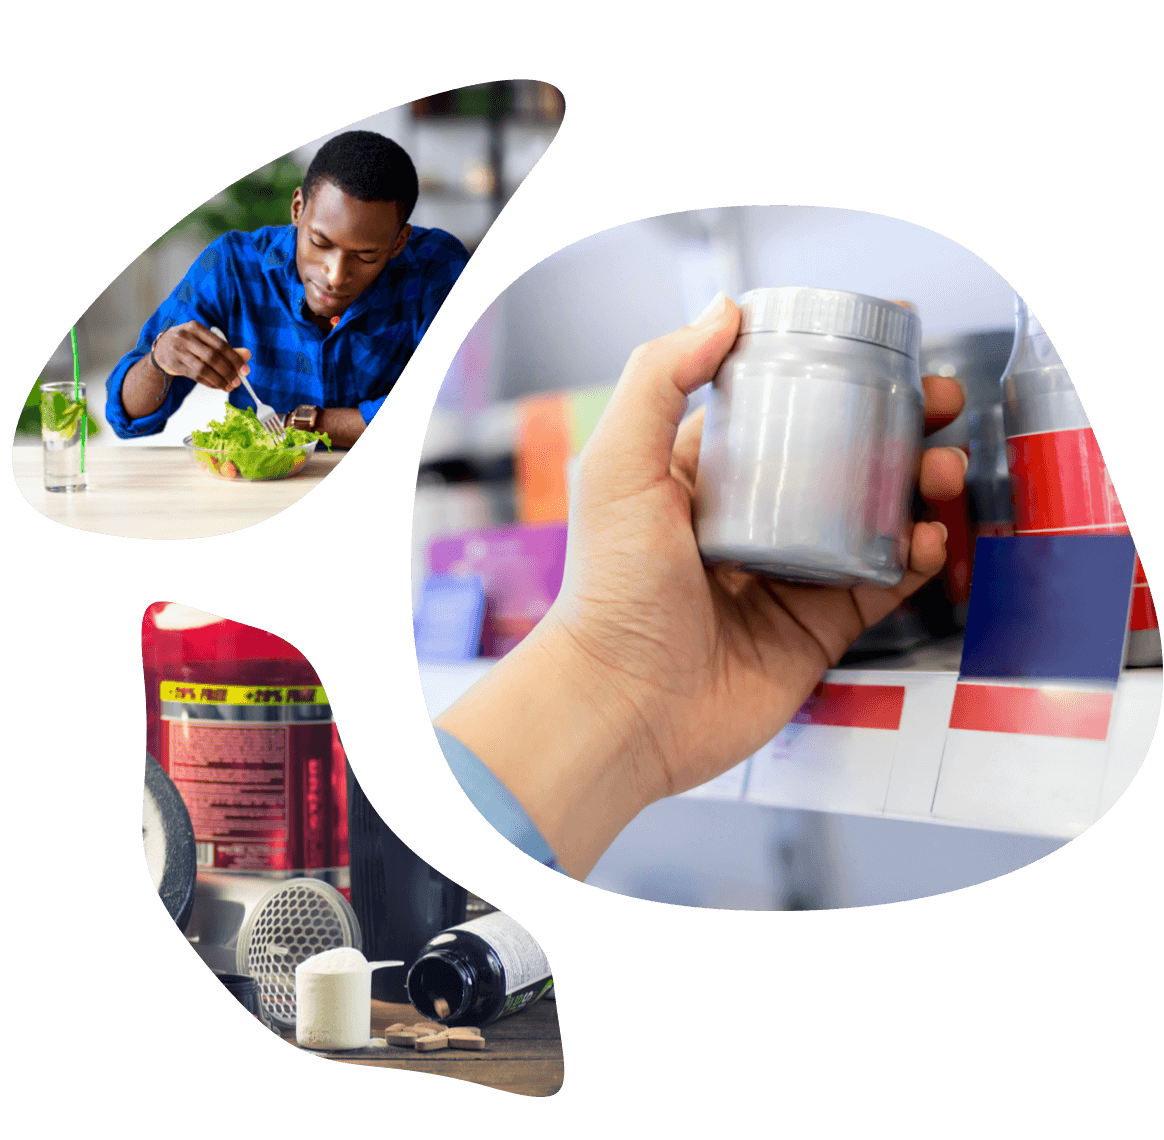 Photo grid representing nutrition therapeutic area (man eating salad, dietary supplement bottle, etc.).